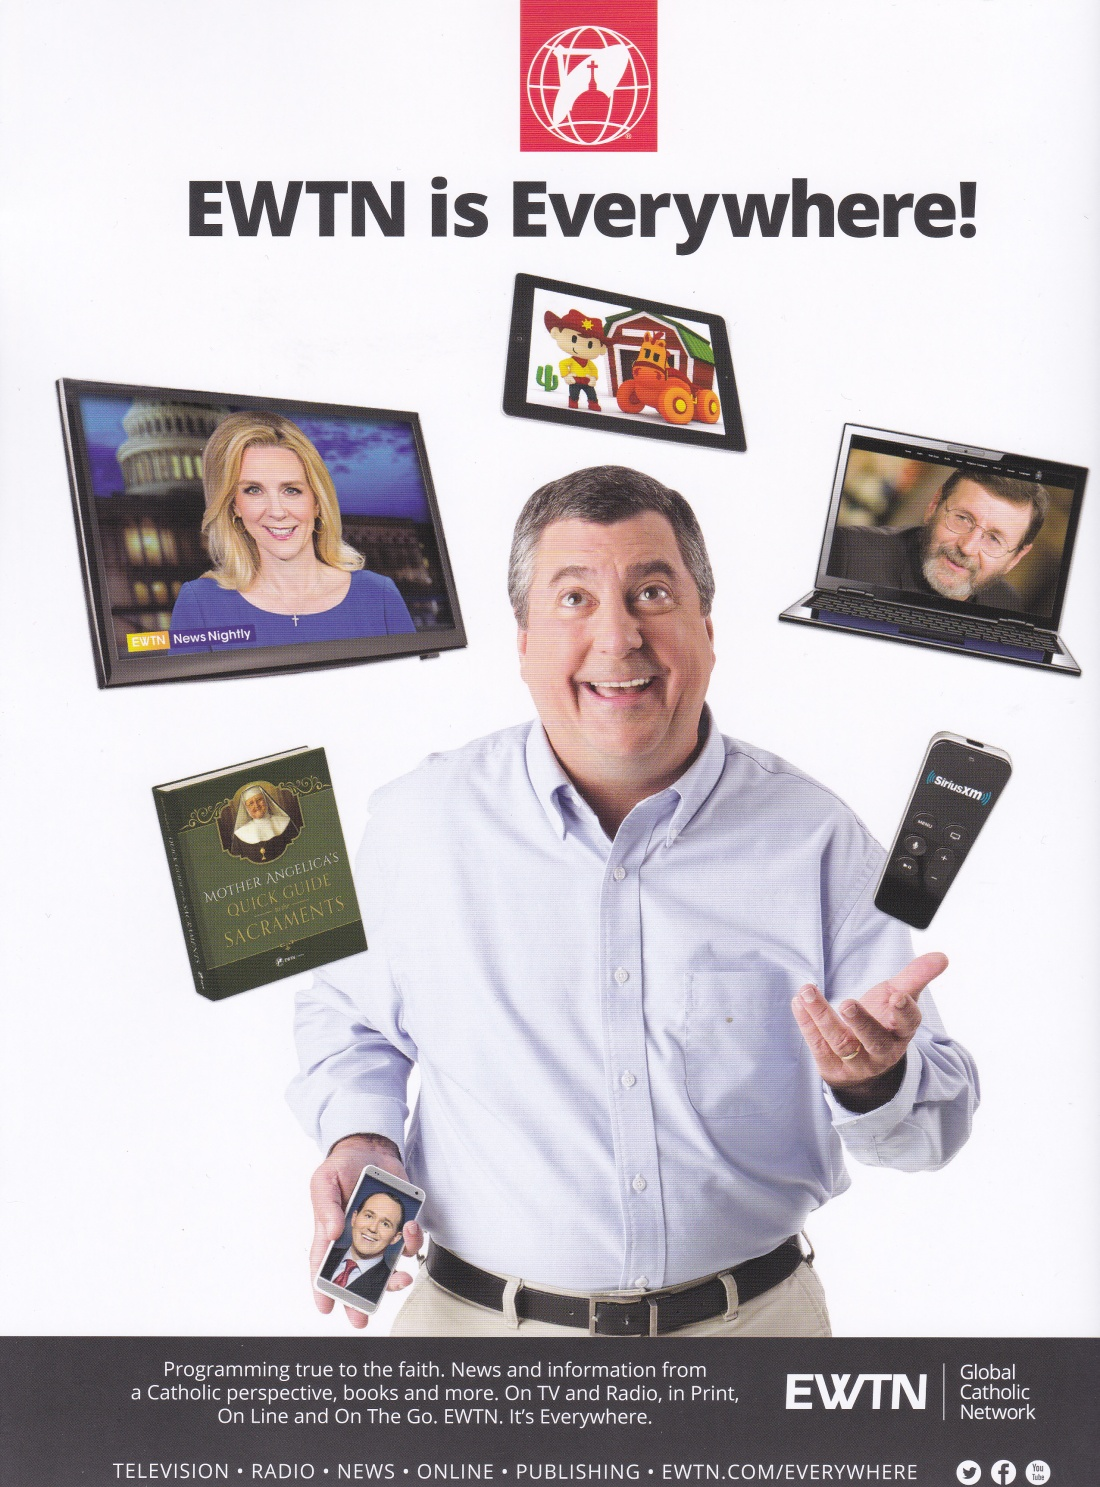 ewtn is everywhere! – seeking jesus in danbury